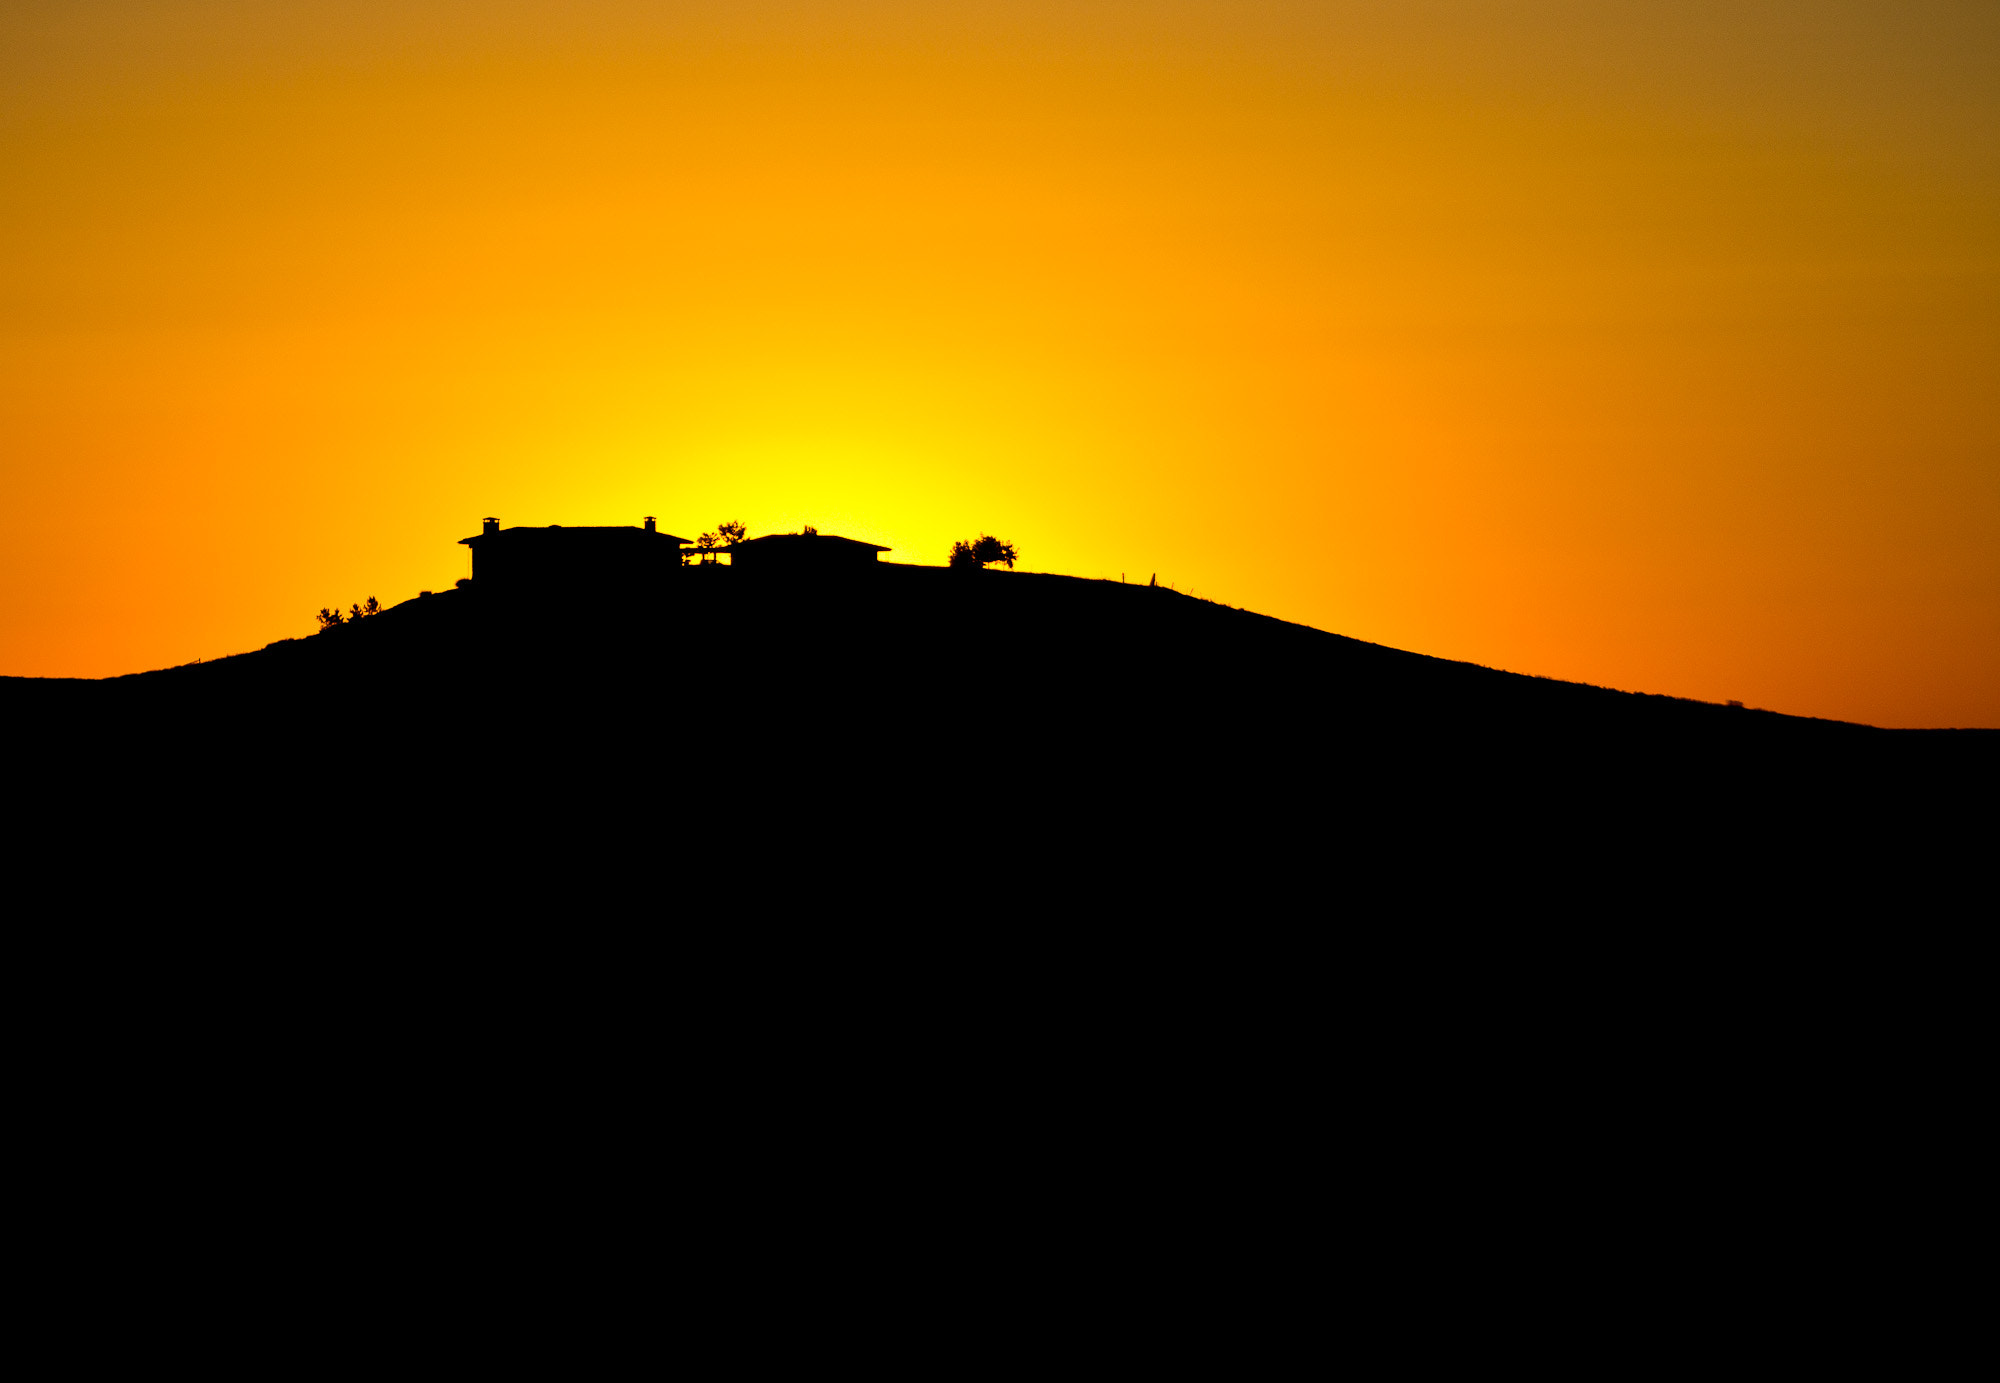 Photograph House on the hill silhouette by Kevin Rank on 500px